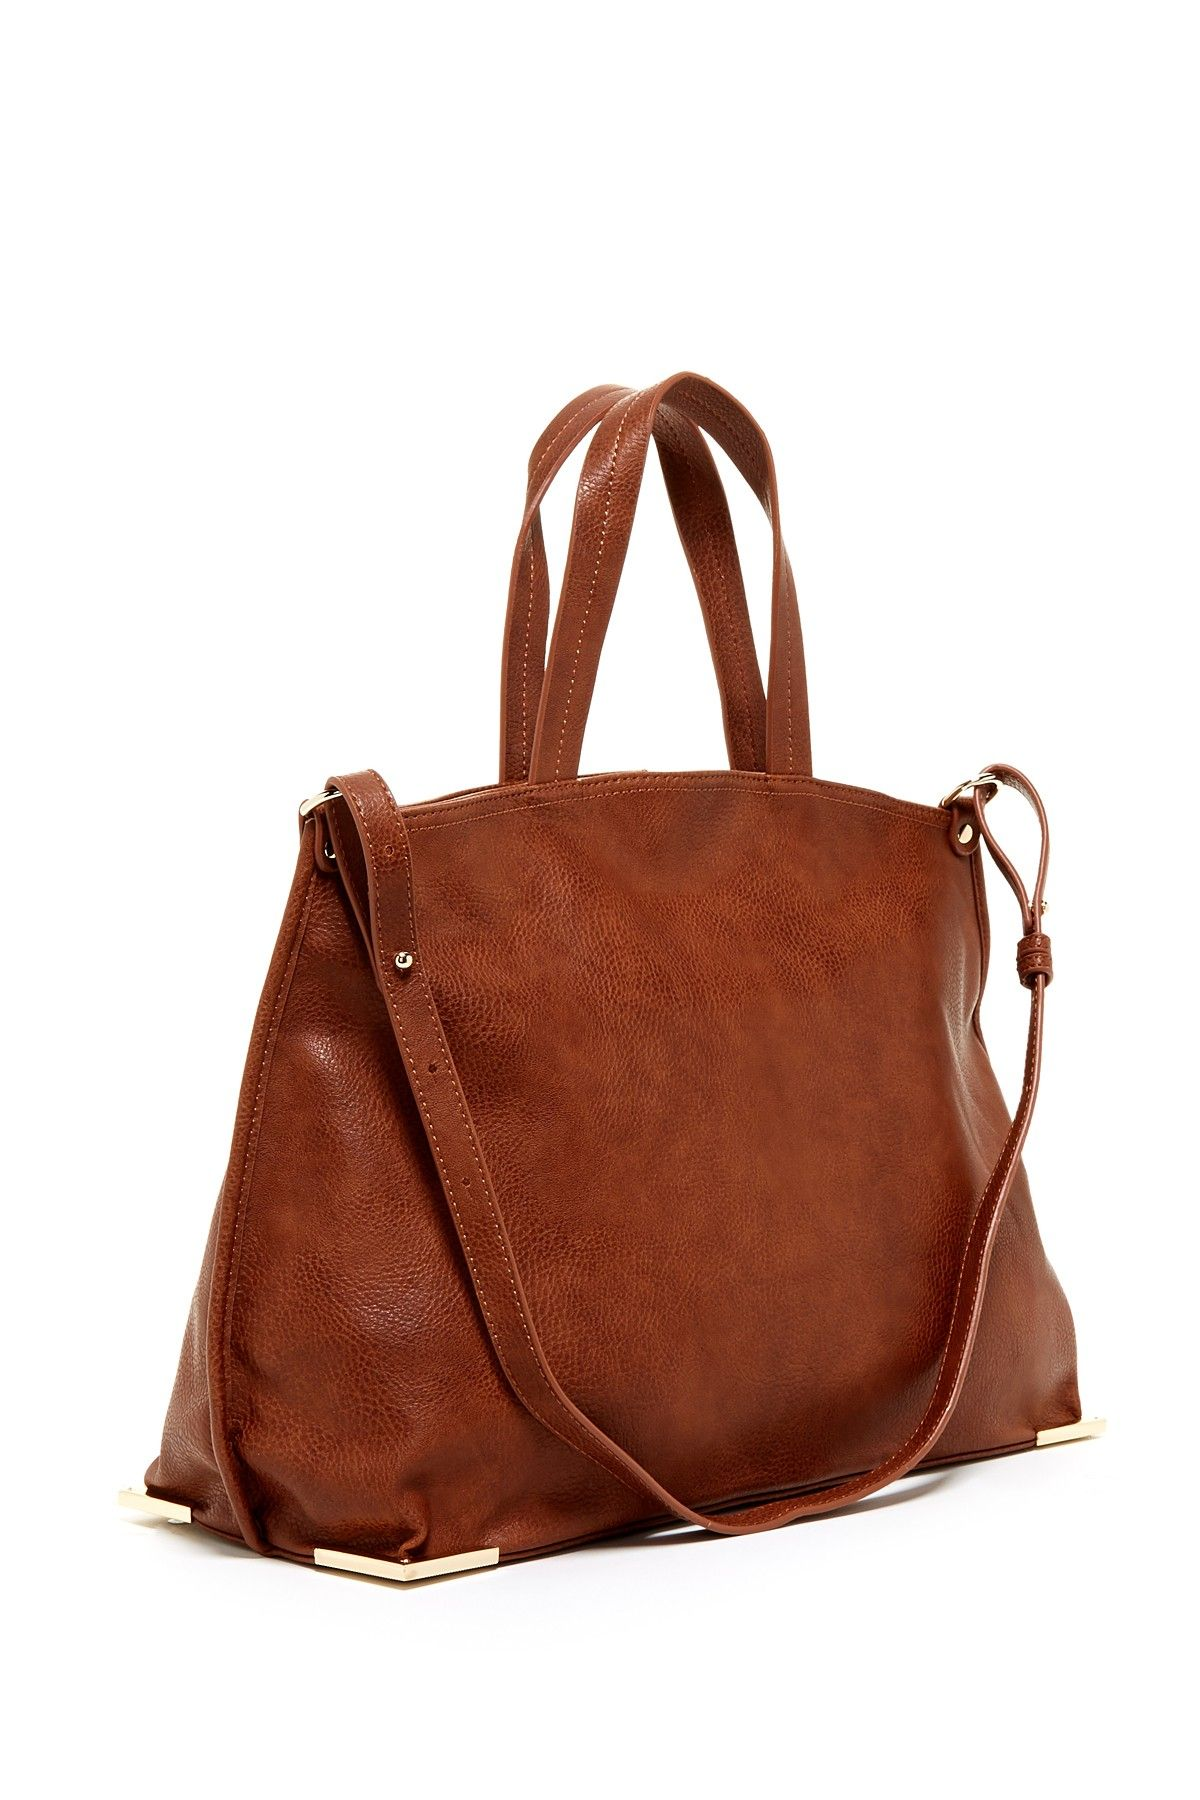 I want it! Fall Brown Bag